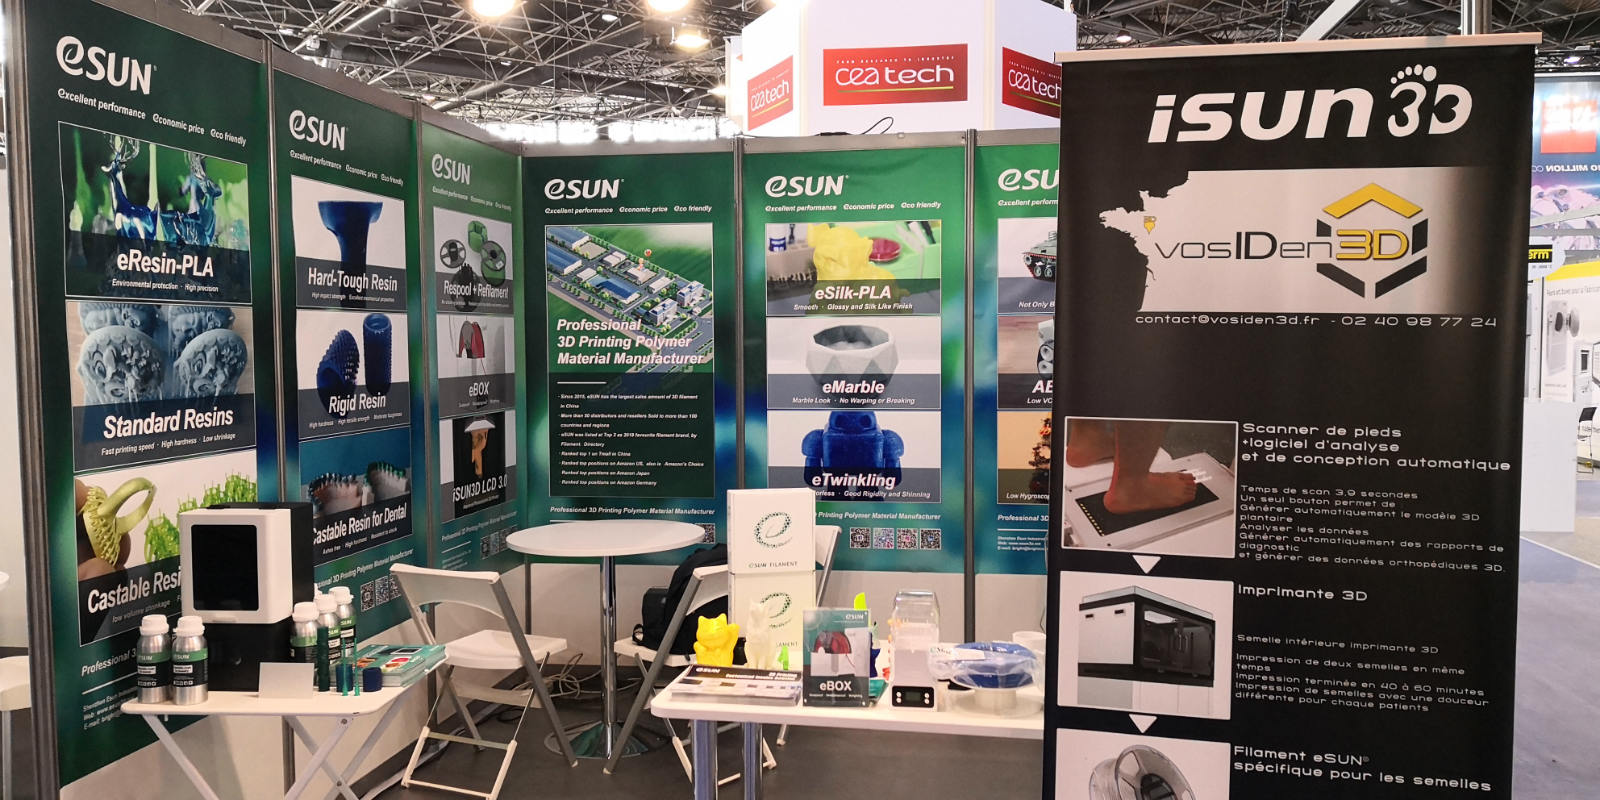 iSUN3D orthopedic customized 3D Printing insole system once again rocked in French [3D PRINT] show!